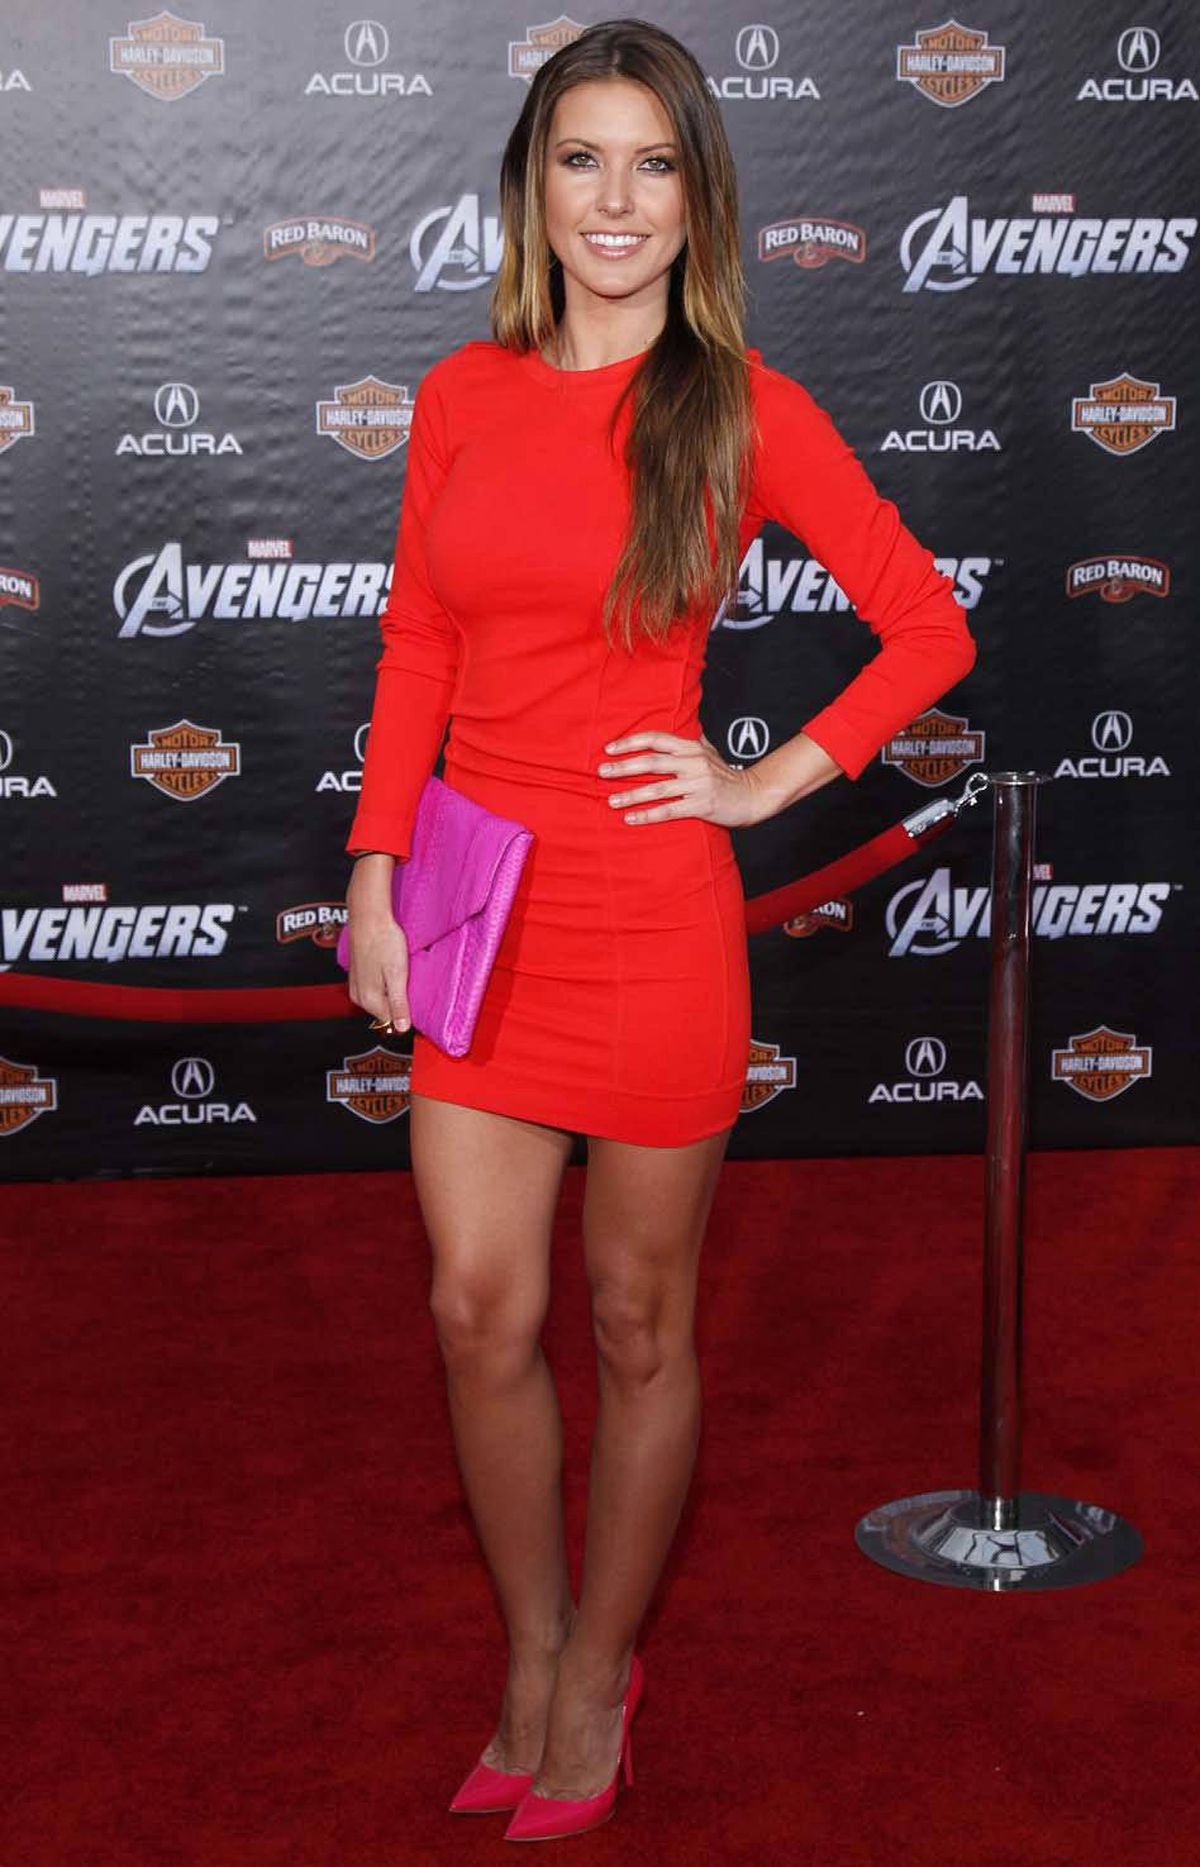 """Reality TV """"personality"""" Audrina Patridge was inexplicably present and as visually appealing as a bad case of thrush at the premiere of """"Marvel's The Avengers"""" in Hollywood last week."""